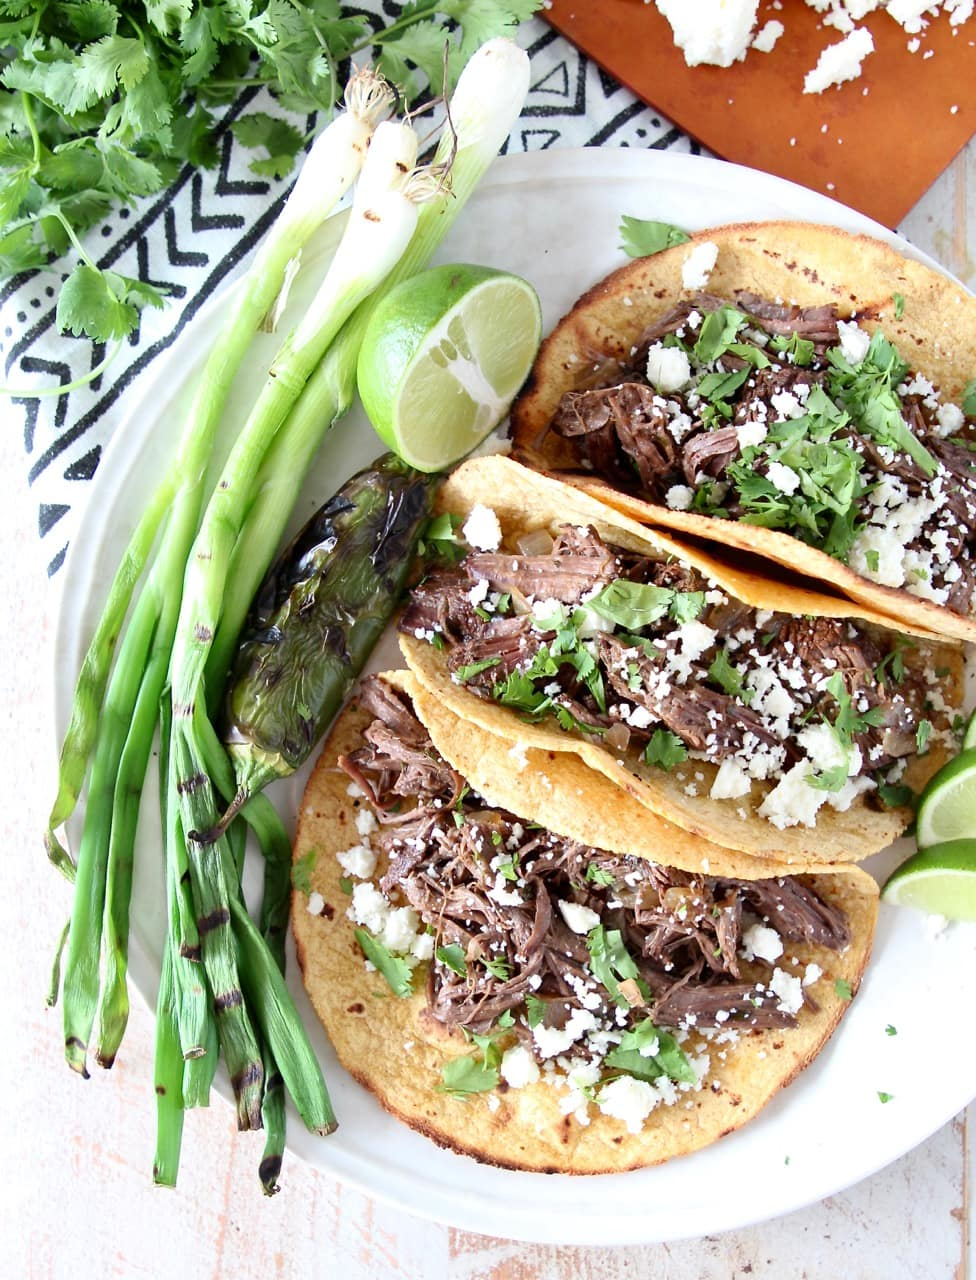 Slow Cooker Shredded Beef Barbacoa Tacos in Corn Tortillas with Grilled Green Onions, Jalapeno and Lime